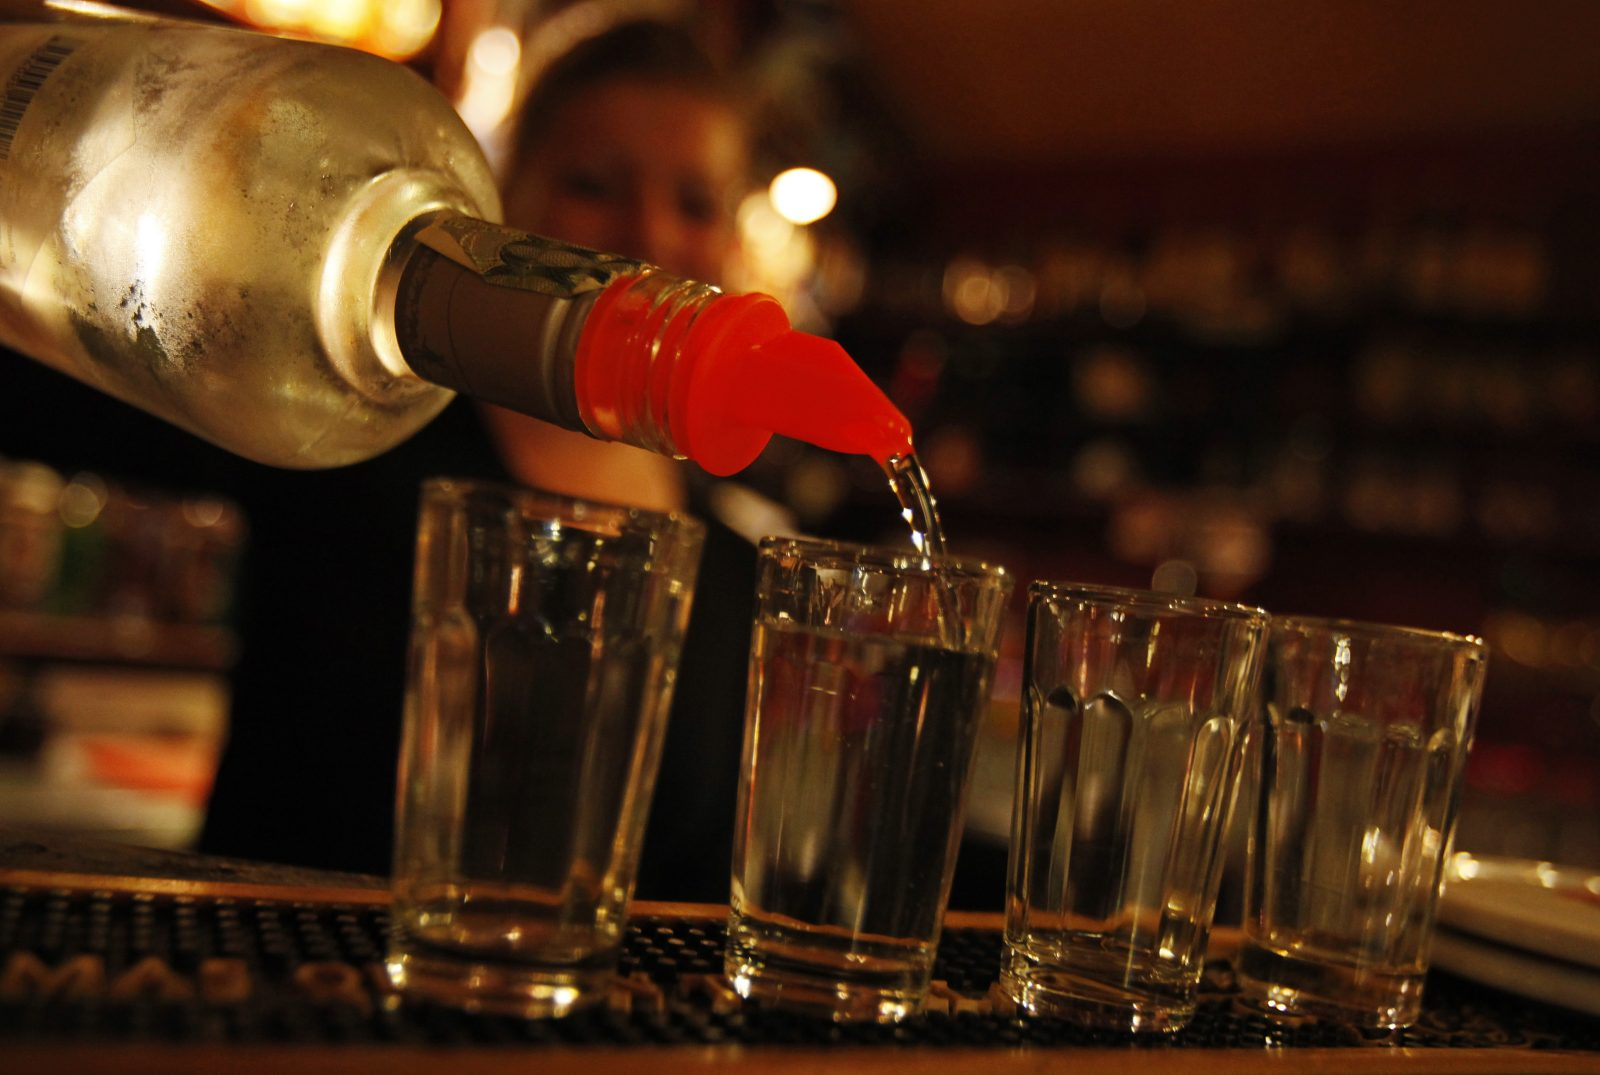 A bartender serves alcohol at a bar in Prague September 12, 2012. Fourteen people have died in the Czech Republic and at least 20 are in hospital after drinking bootleg vodka and rum containing methanol, police said on Wednesday, in the worst case of fatal alcohol poisoning in the country in at least 30 years.